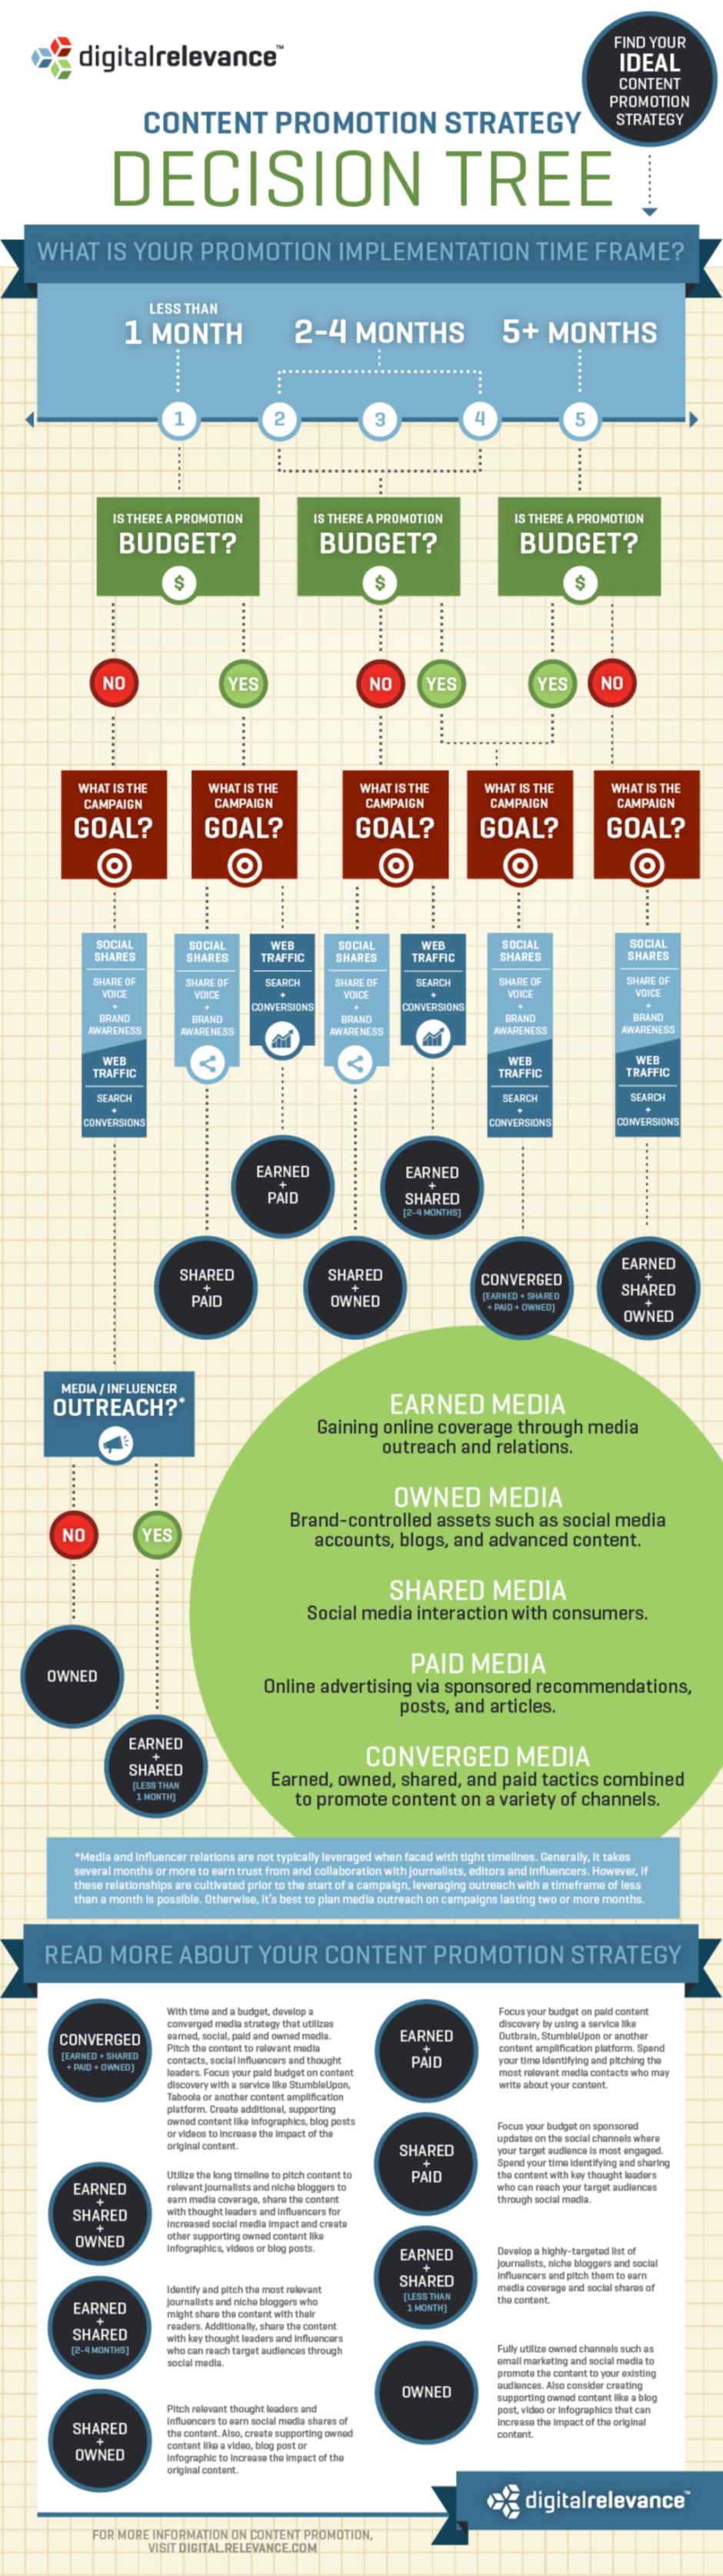 Content Promotion Strategy Decision Tree